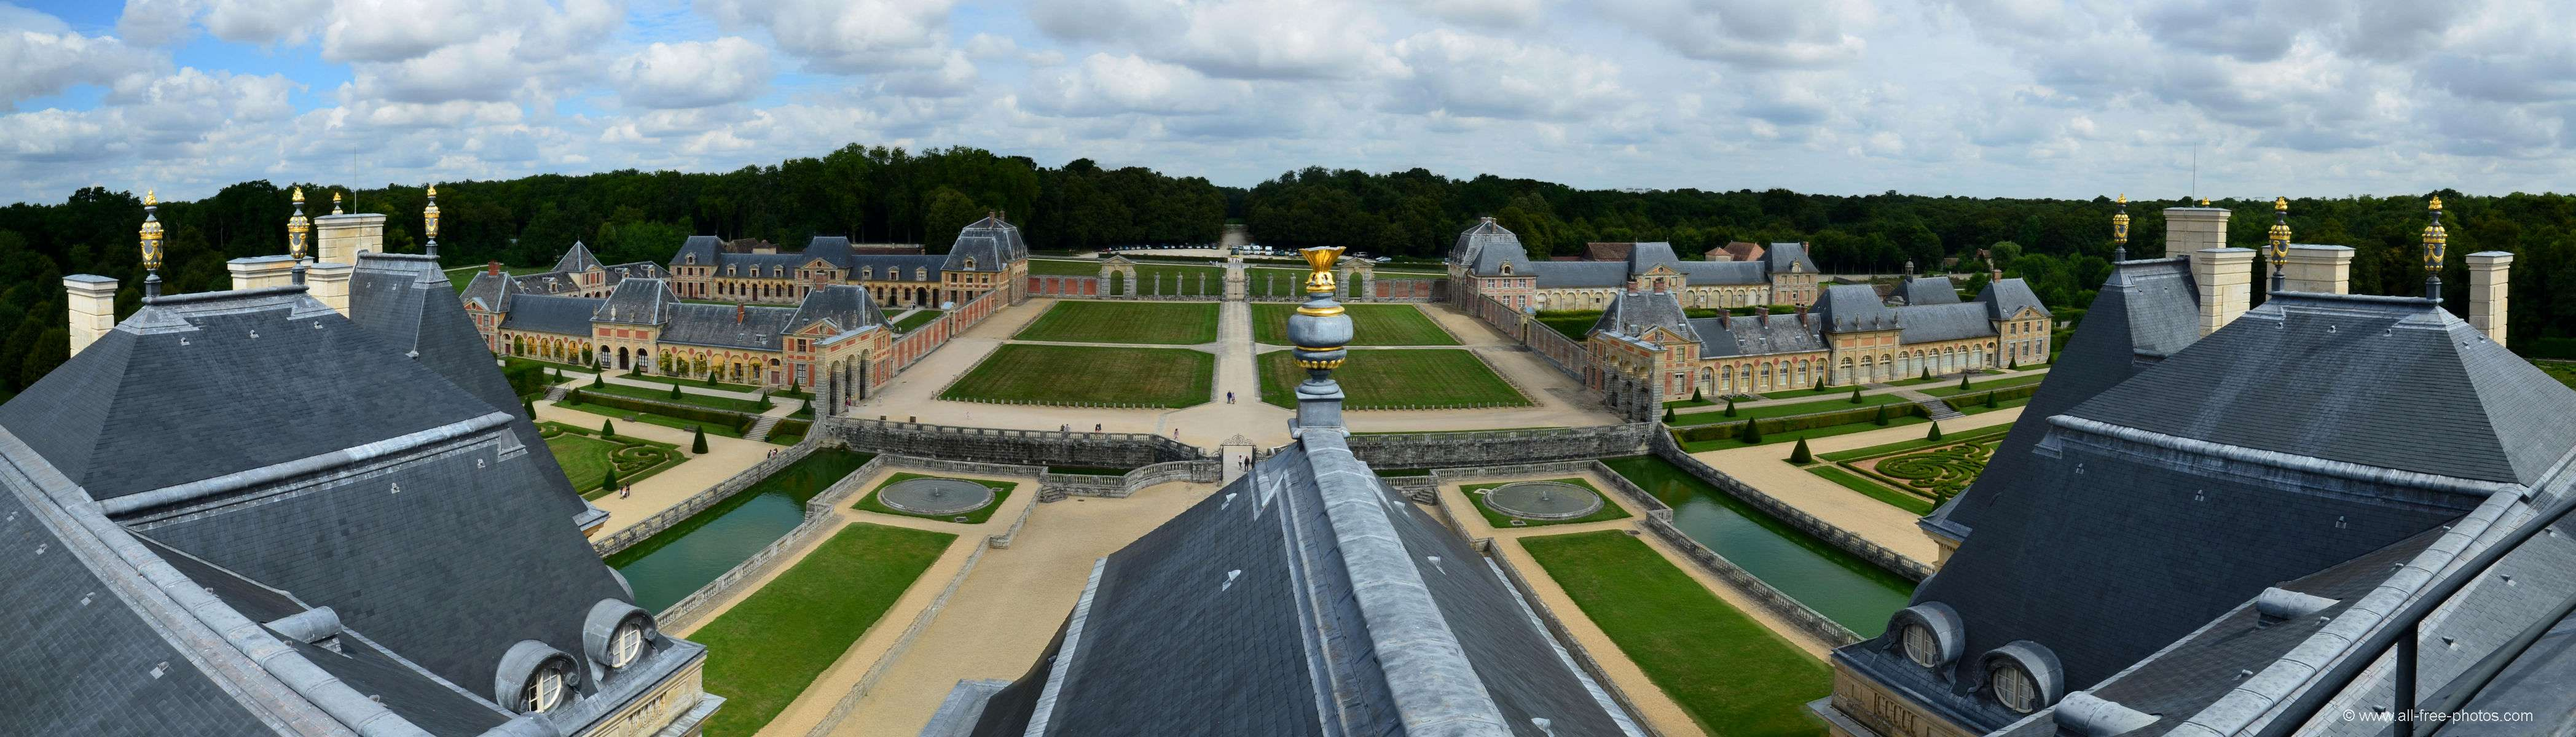 Chateau of Vaux-le-Vicomte - France